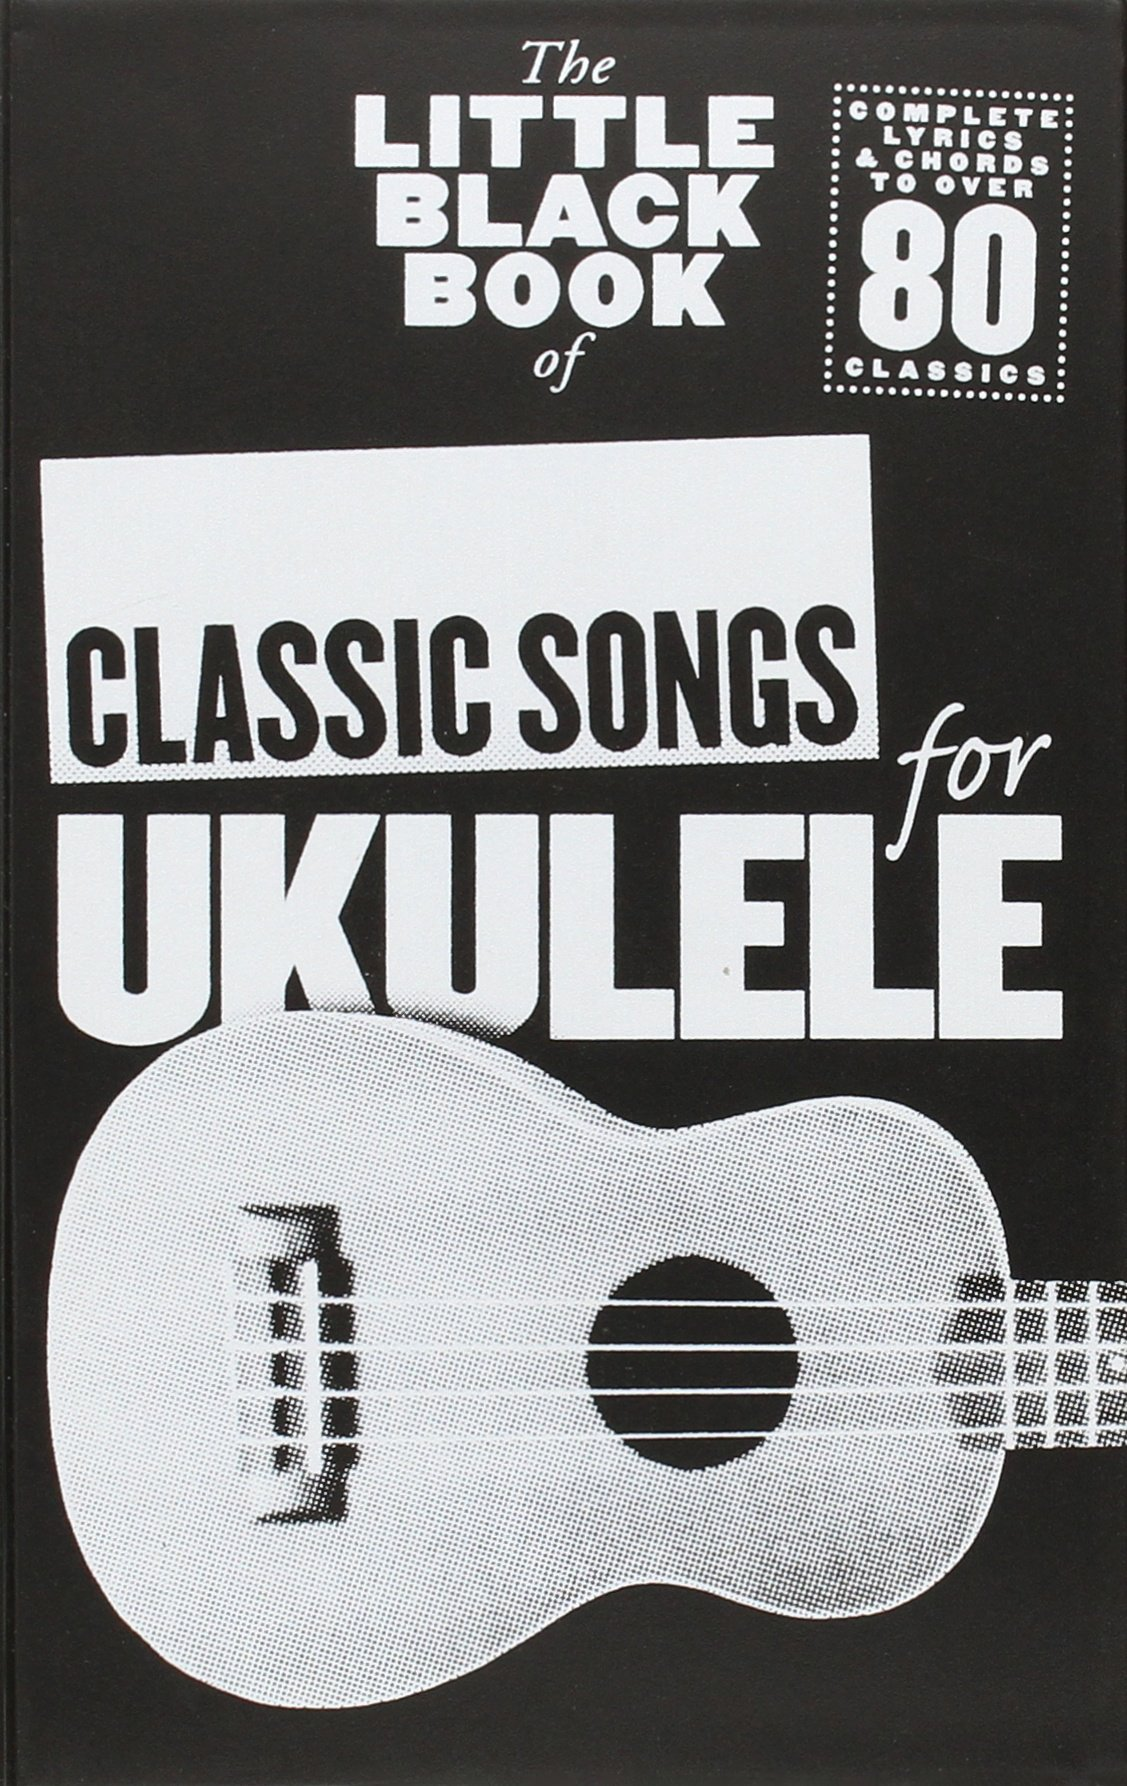 Amazon.fr - The Little Black Book of Classic Songs for Ukulele Uke Book -  Collectif - Livres